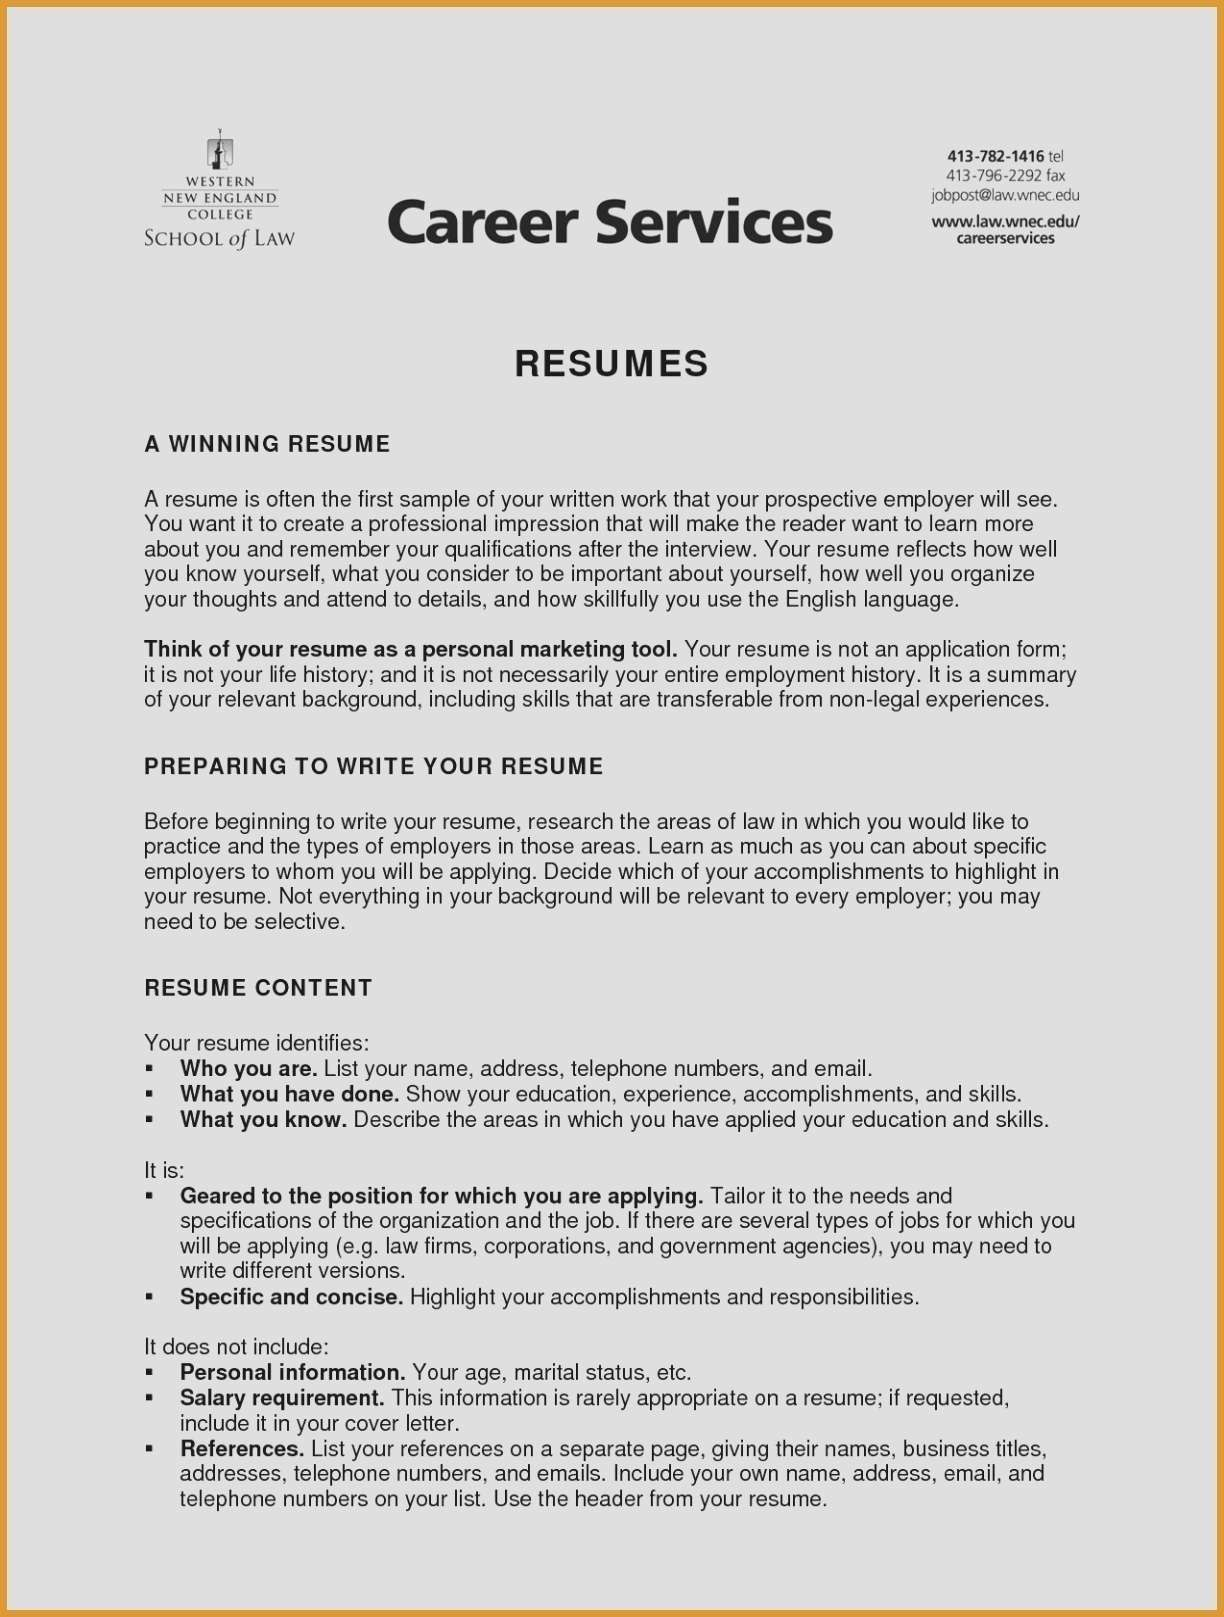 Email Template For Business Proposal  Caquetapositivo For Email Template For Business Proposal